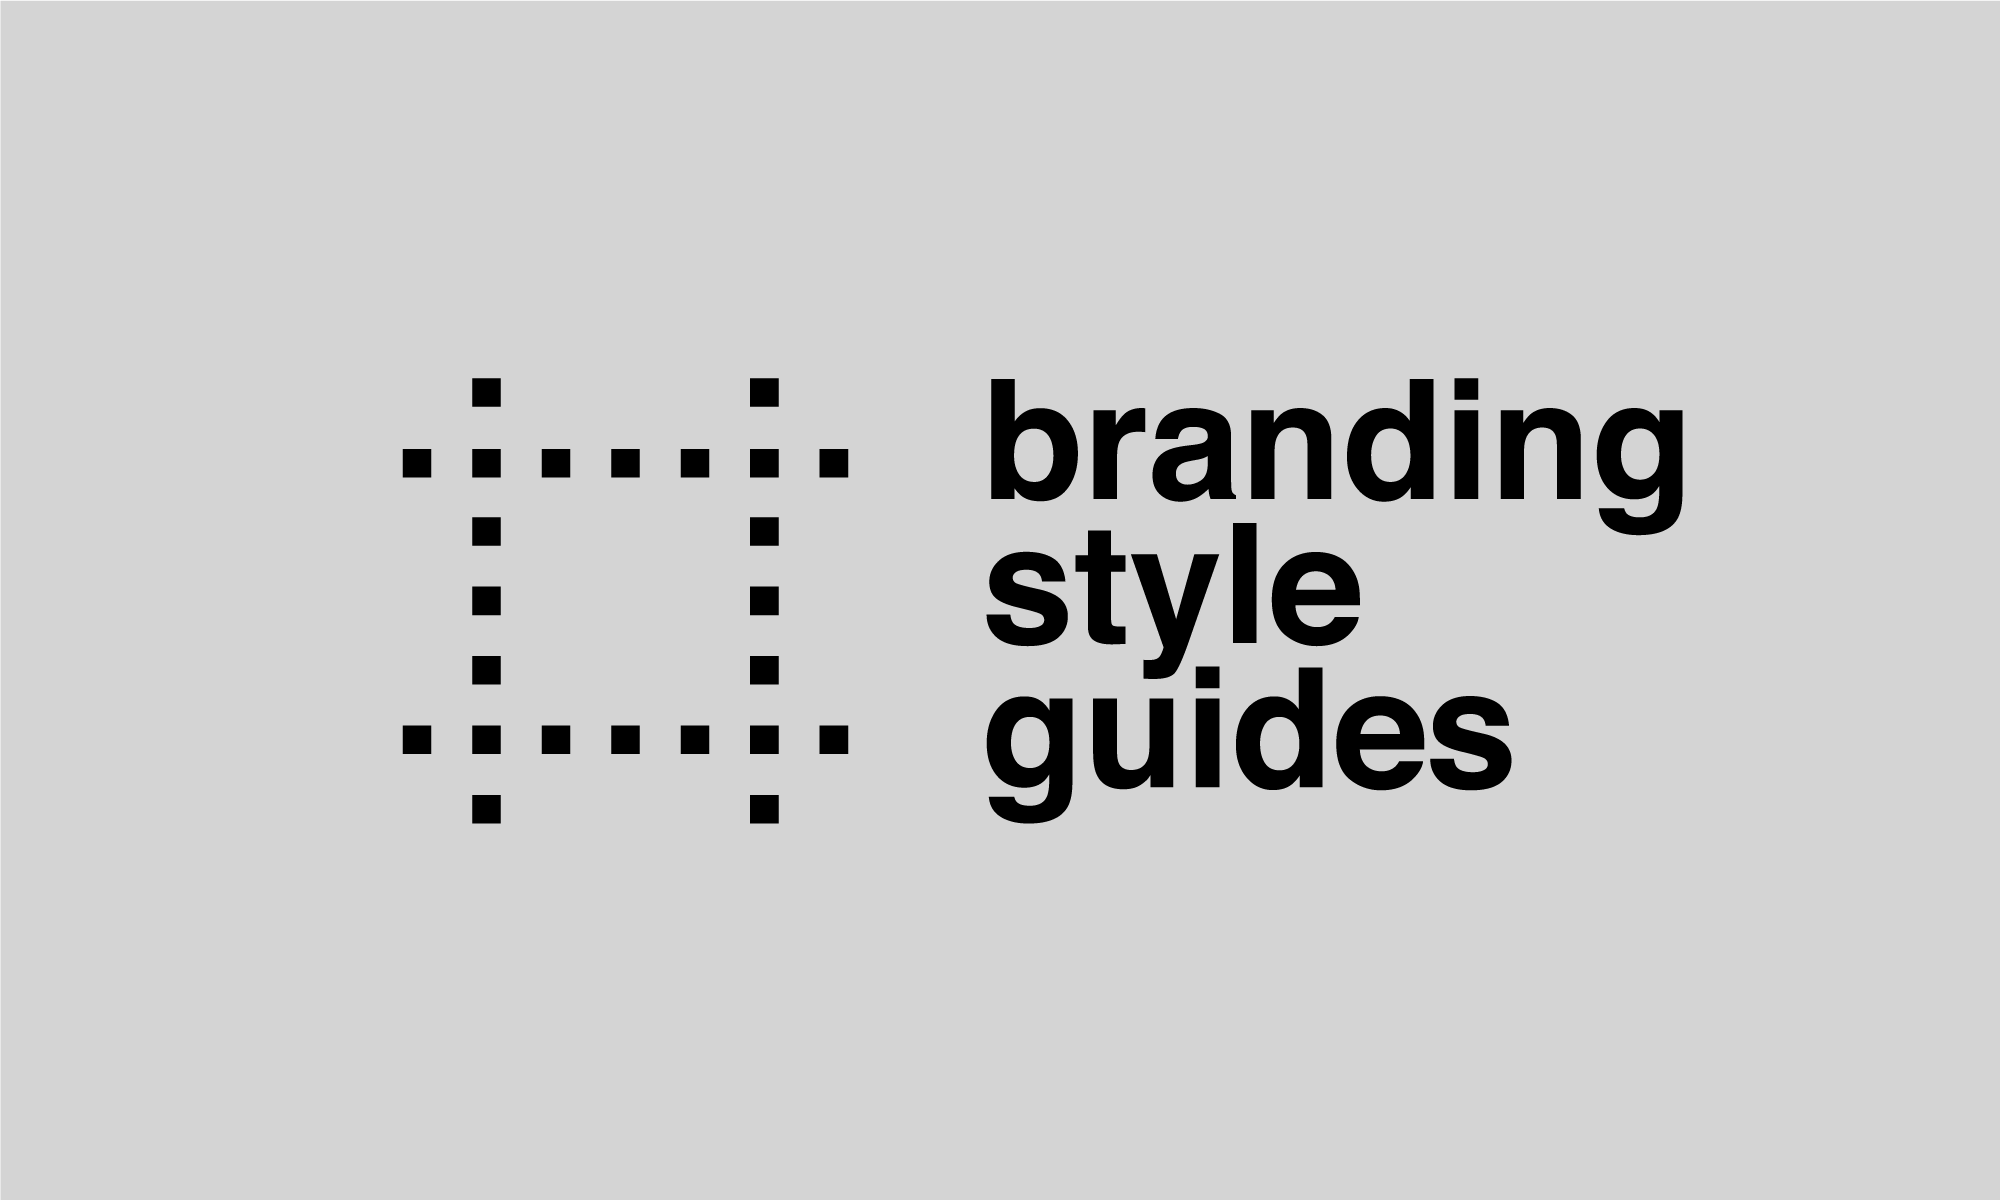 The branding style guidelines documents archive